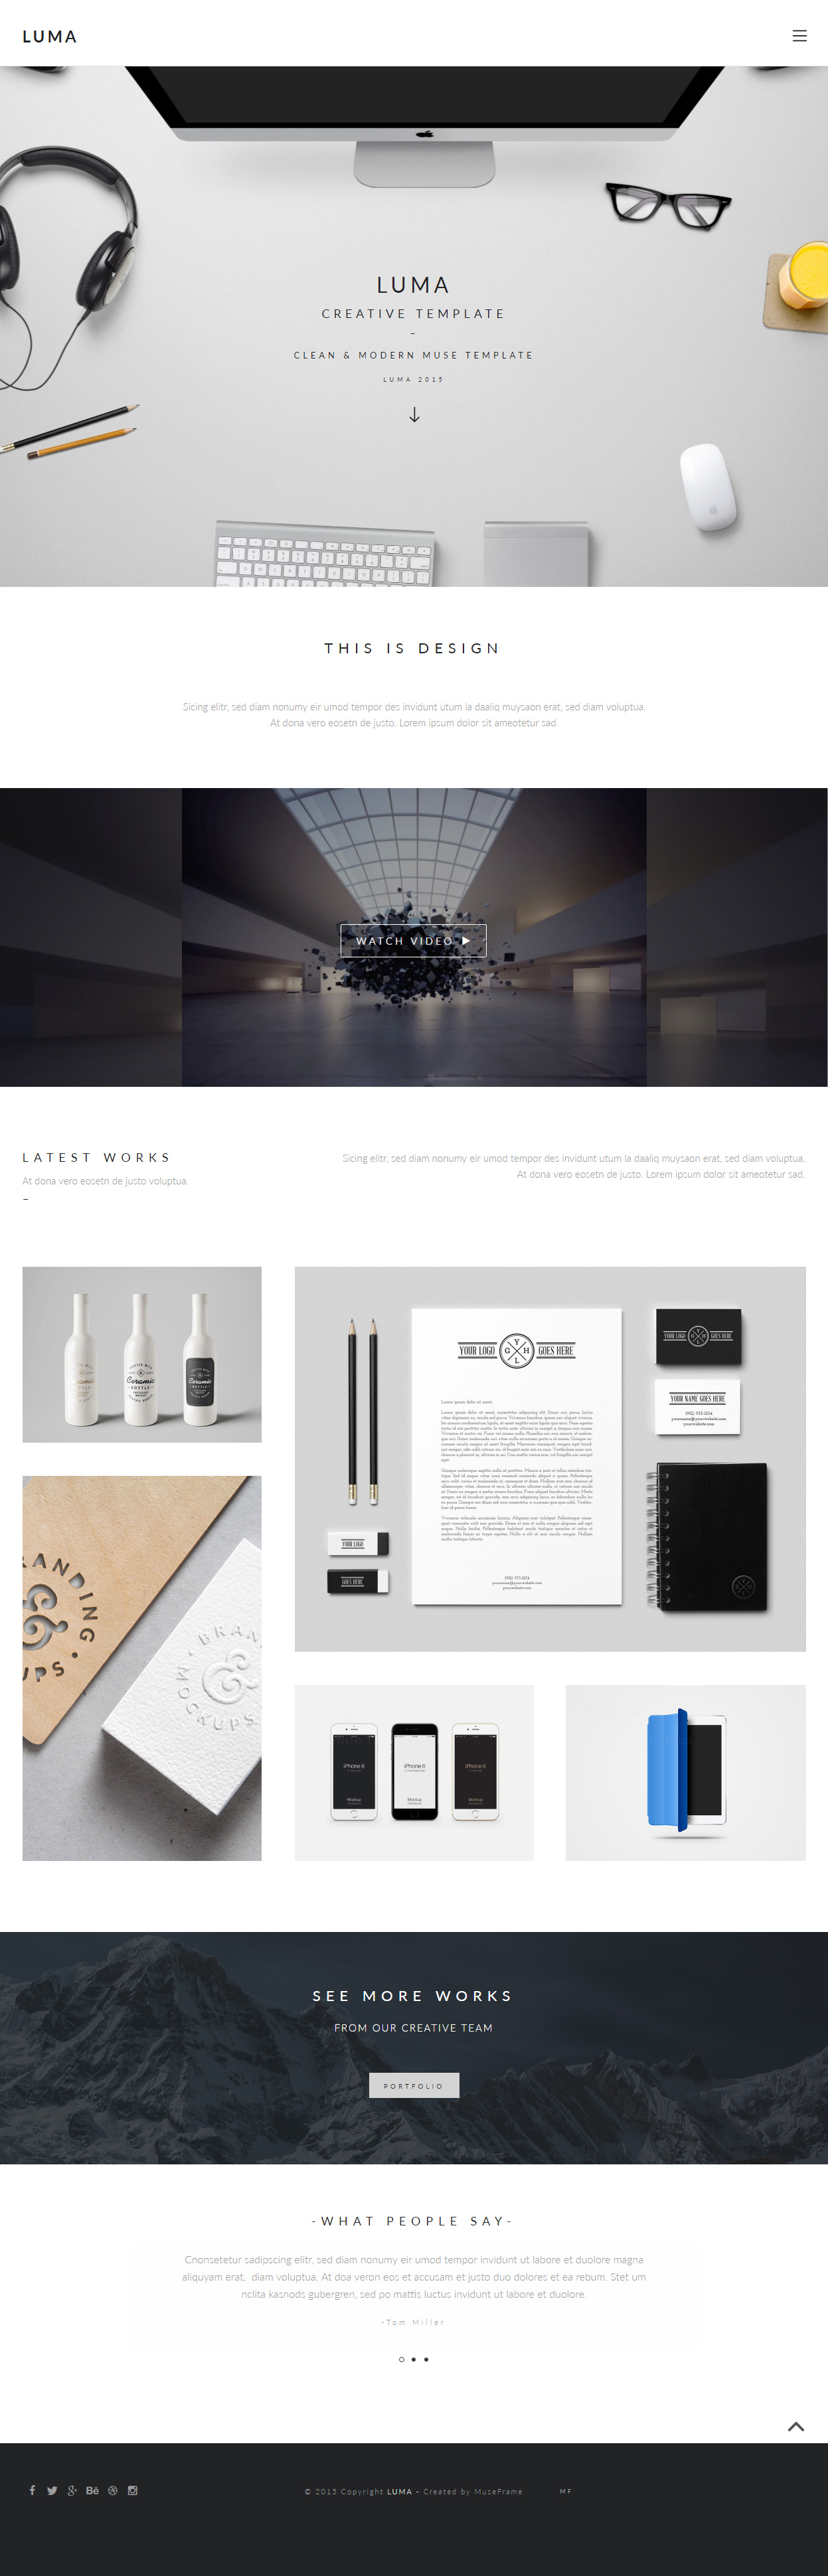 5 best photography muse template in 2016 responsive miracle luma photography muse template maxwellsz